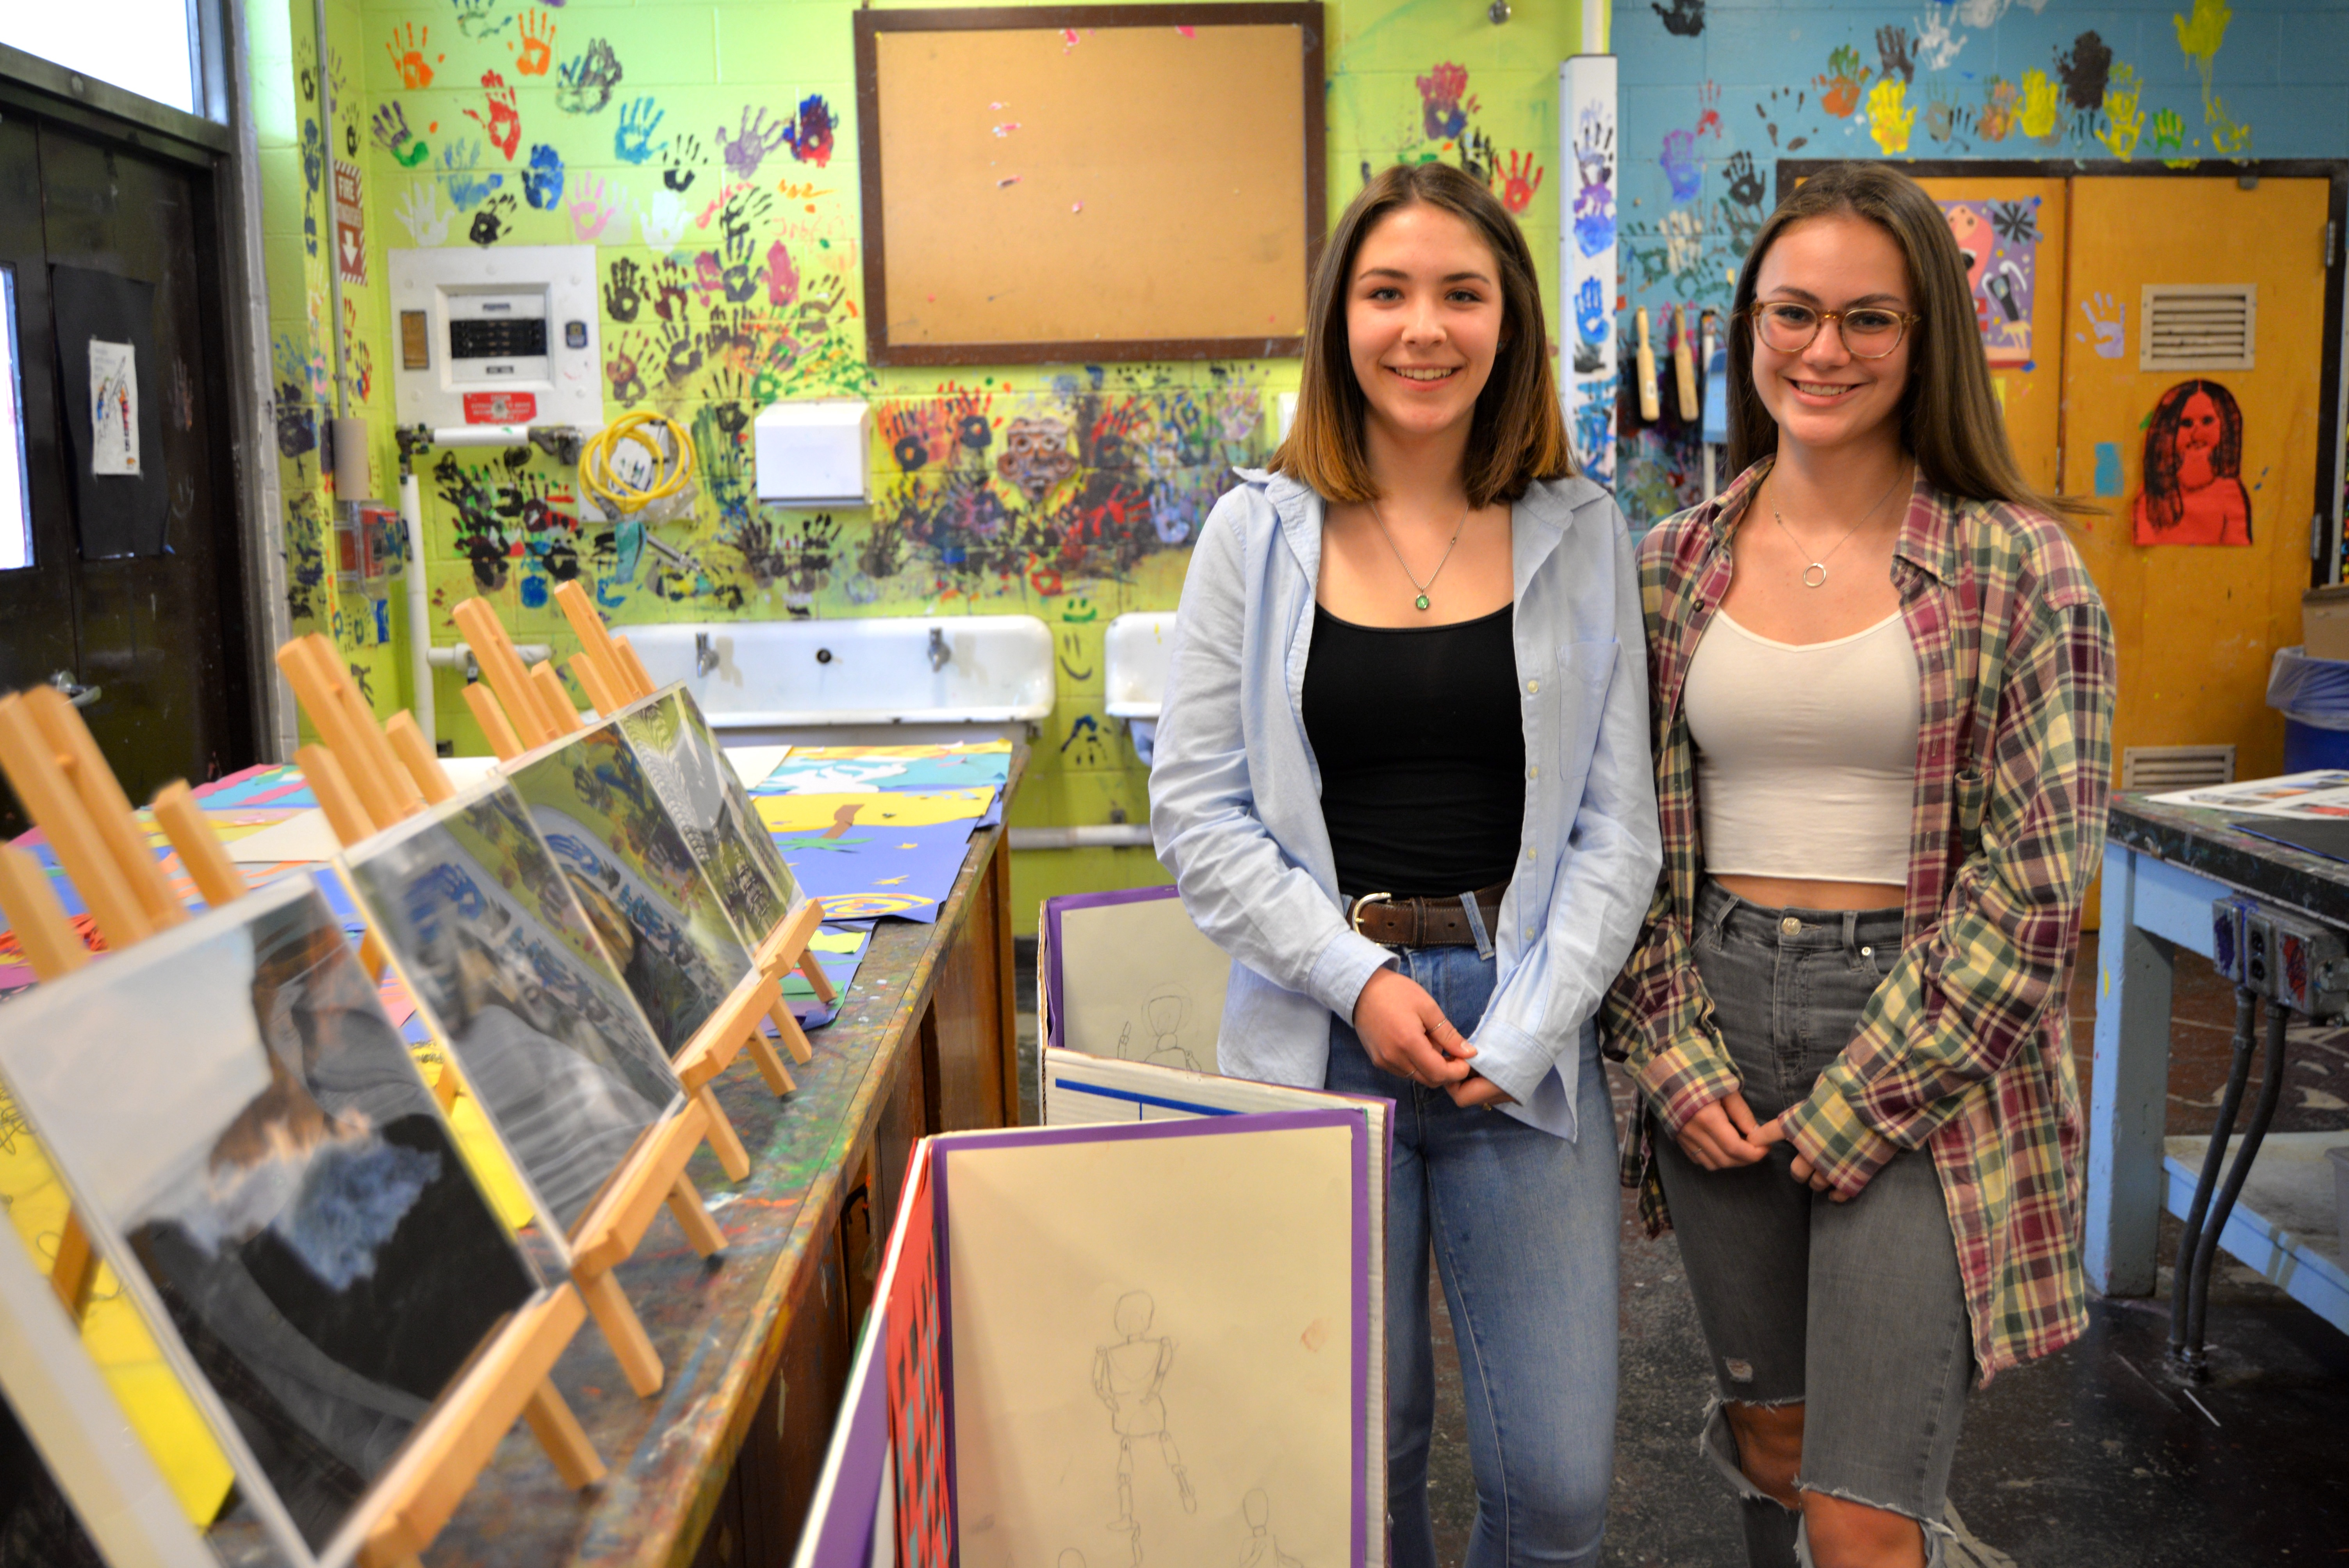 Photographers Sheridan Green, 14, and Dylan Sutherland, 14, are both in 8th grade and plan to continue to pursue the art form in high school.